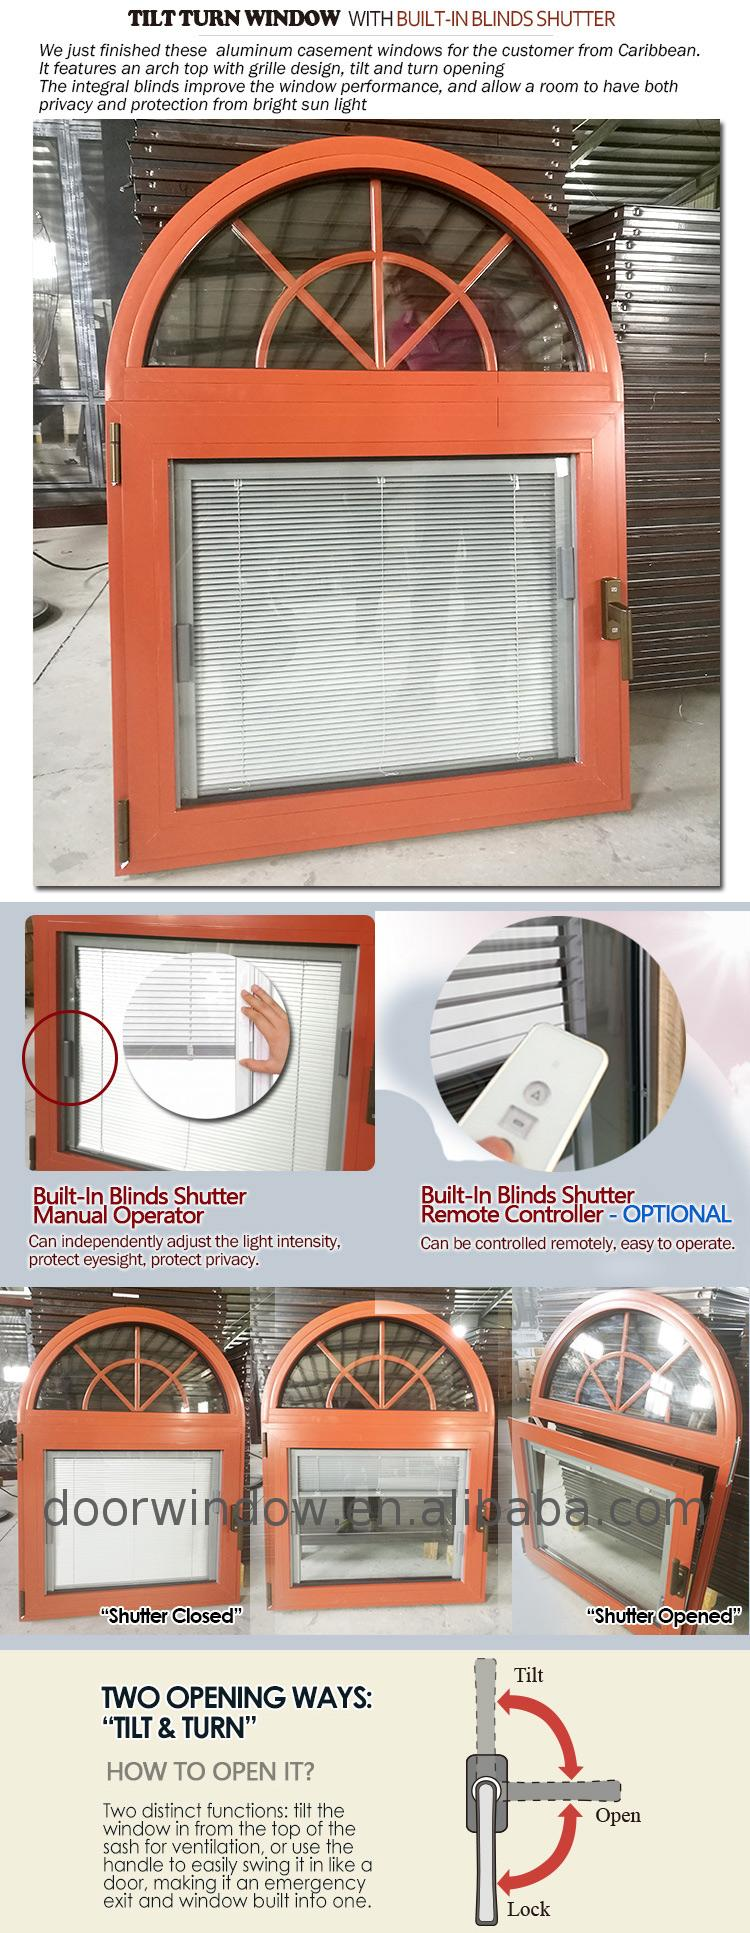 Grille design frosted glass frame round window